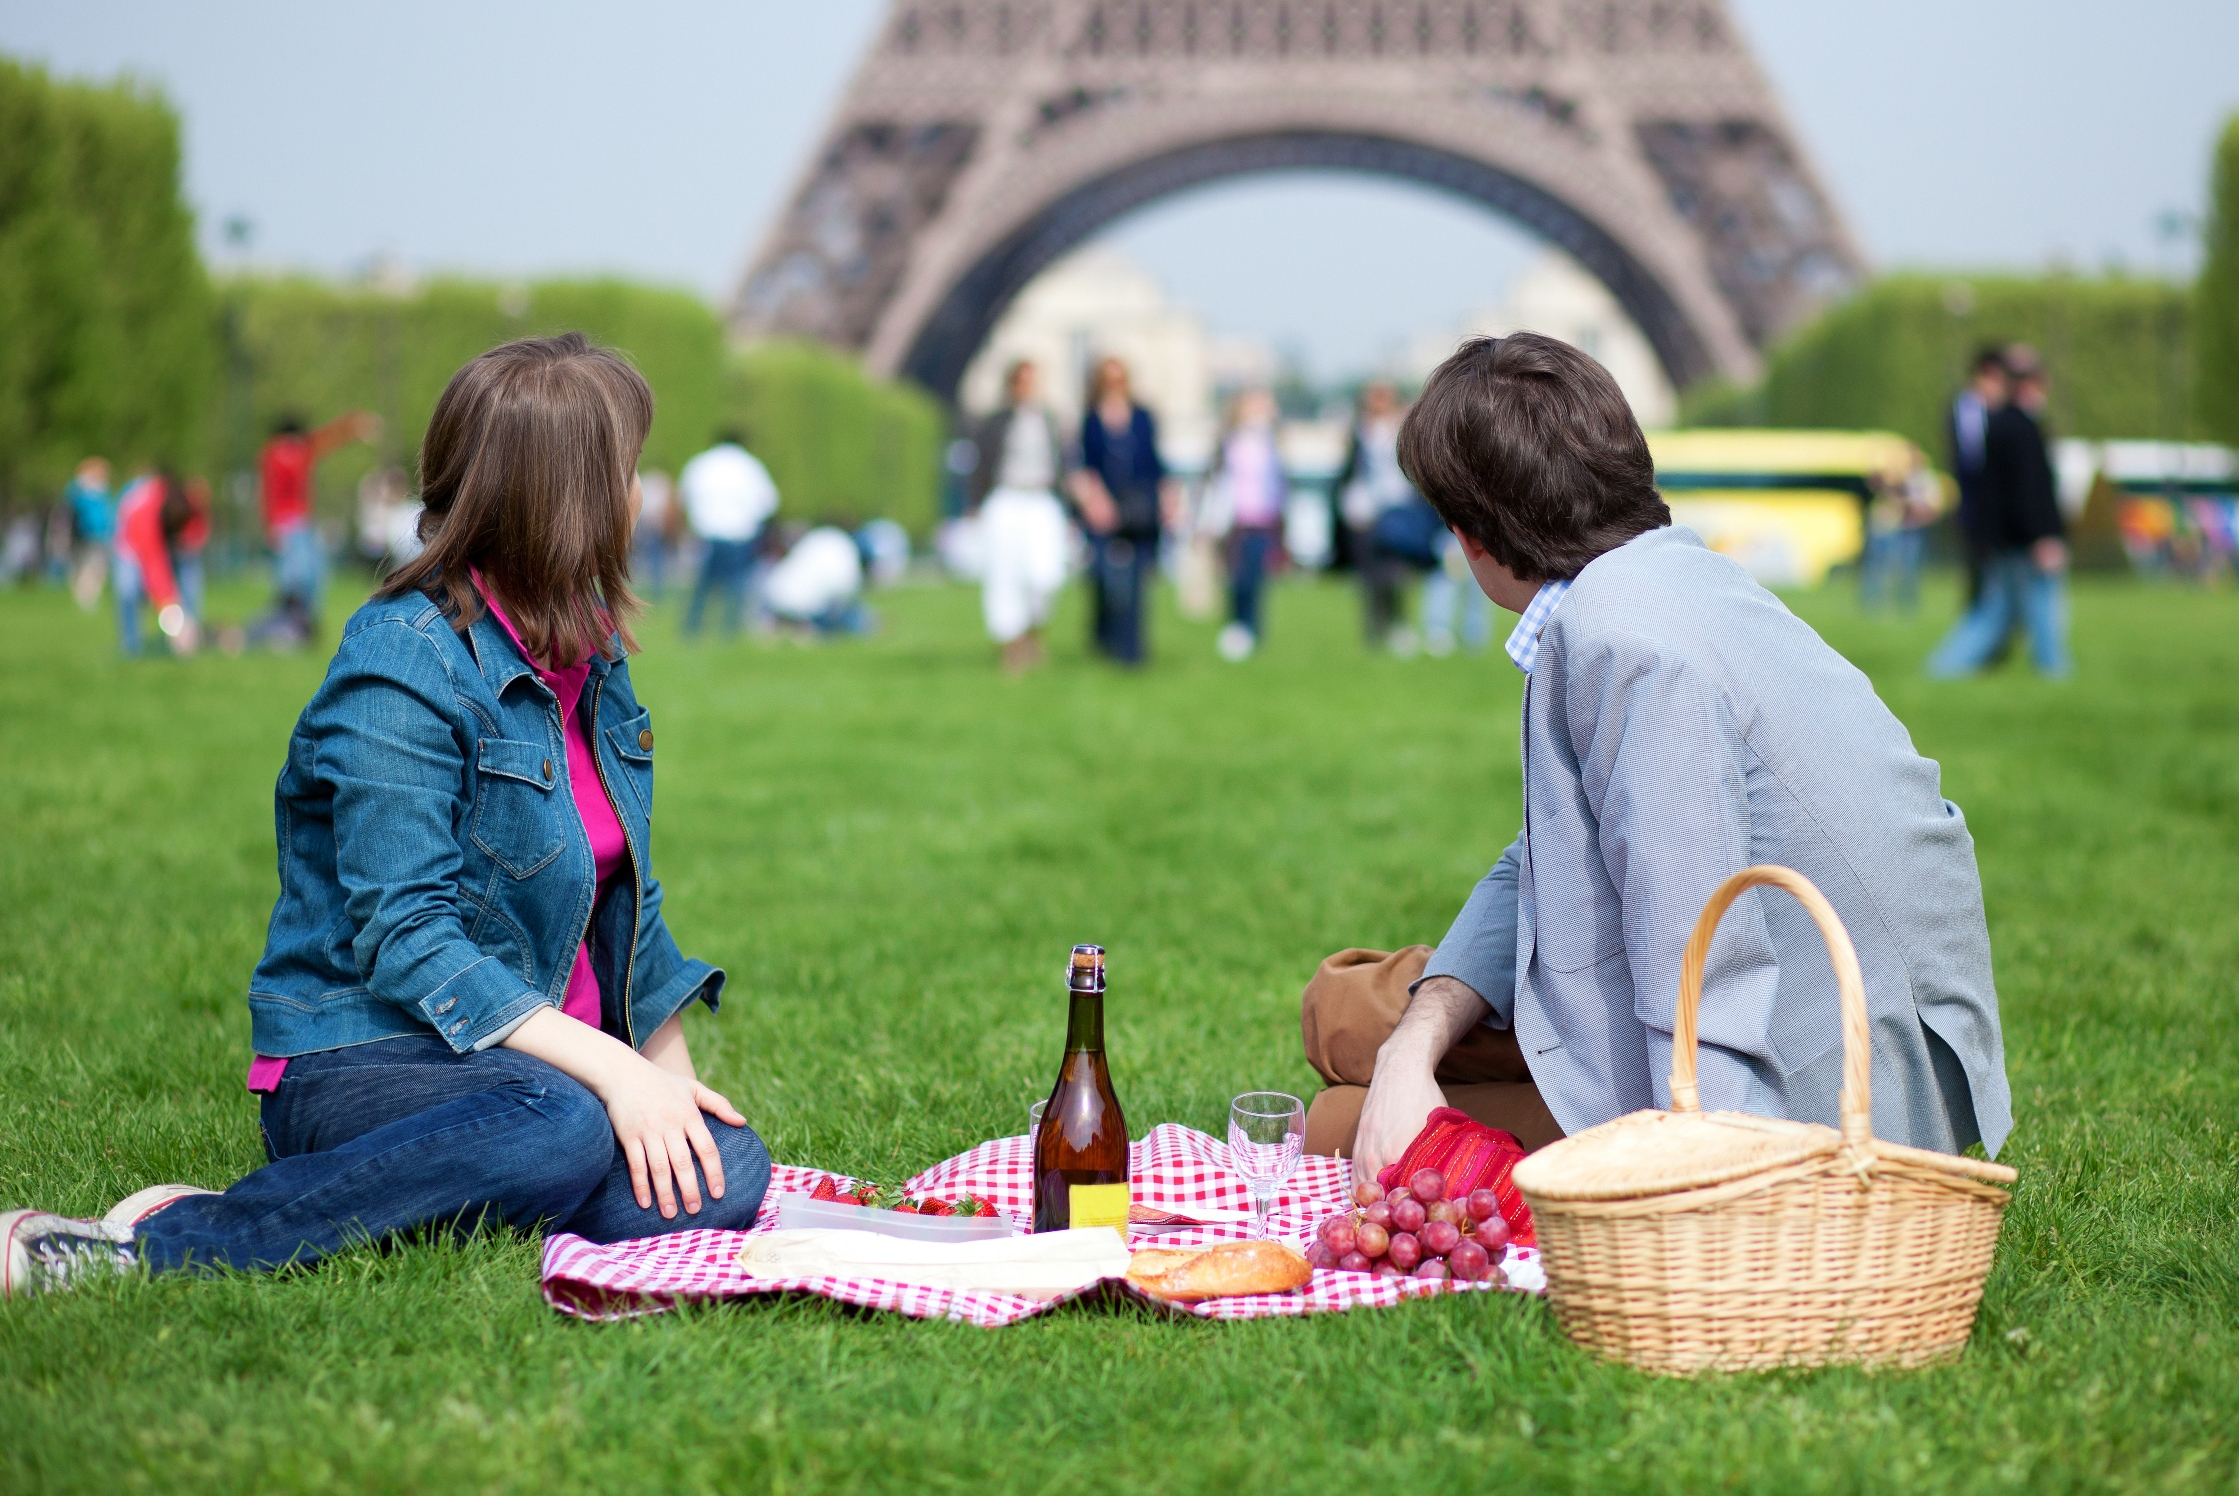 Picnic at Eiffel Tower